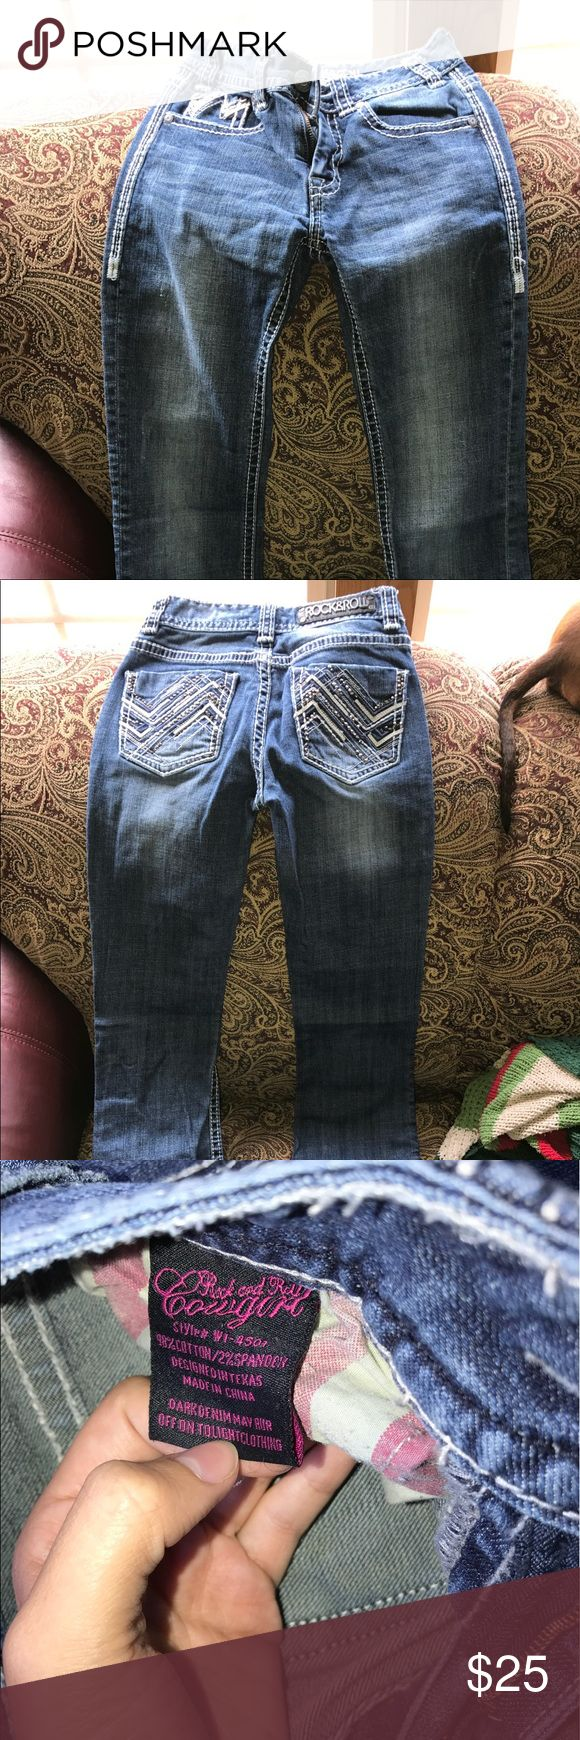 Rock and roll jeans Never worn just took tags off because I thought I would wear them often. Size 24x32 mid rise Rock and Roll Cowgirl Jeans Boot Cut